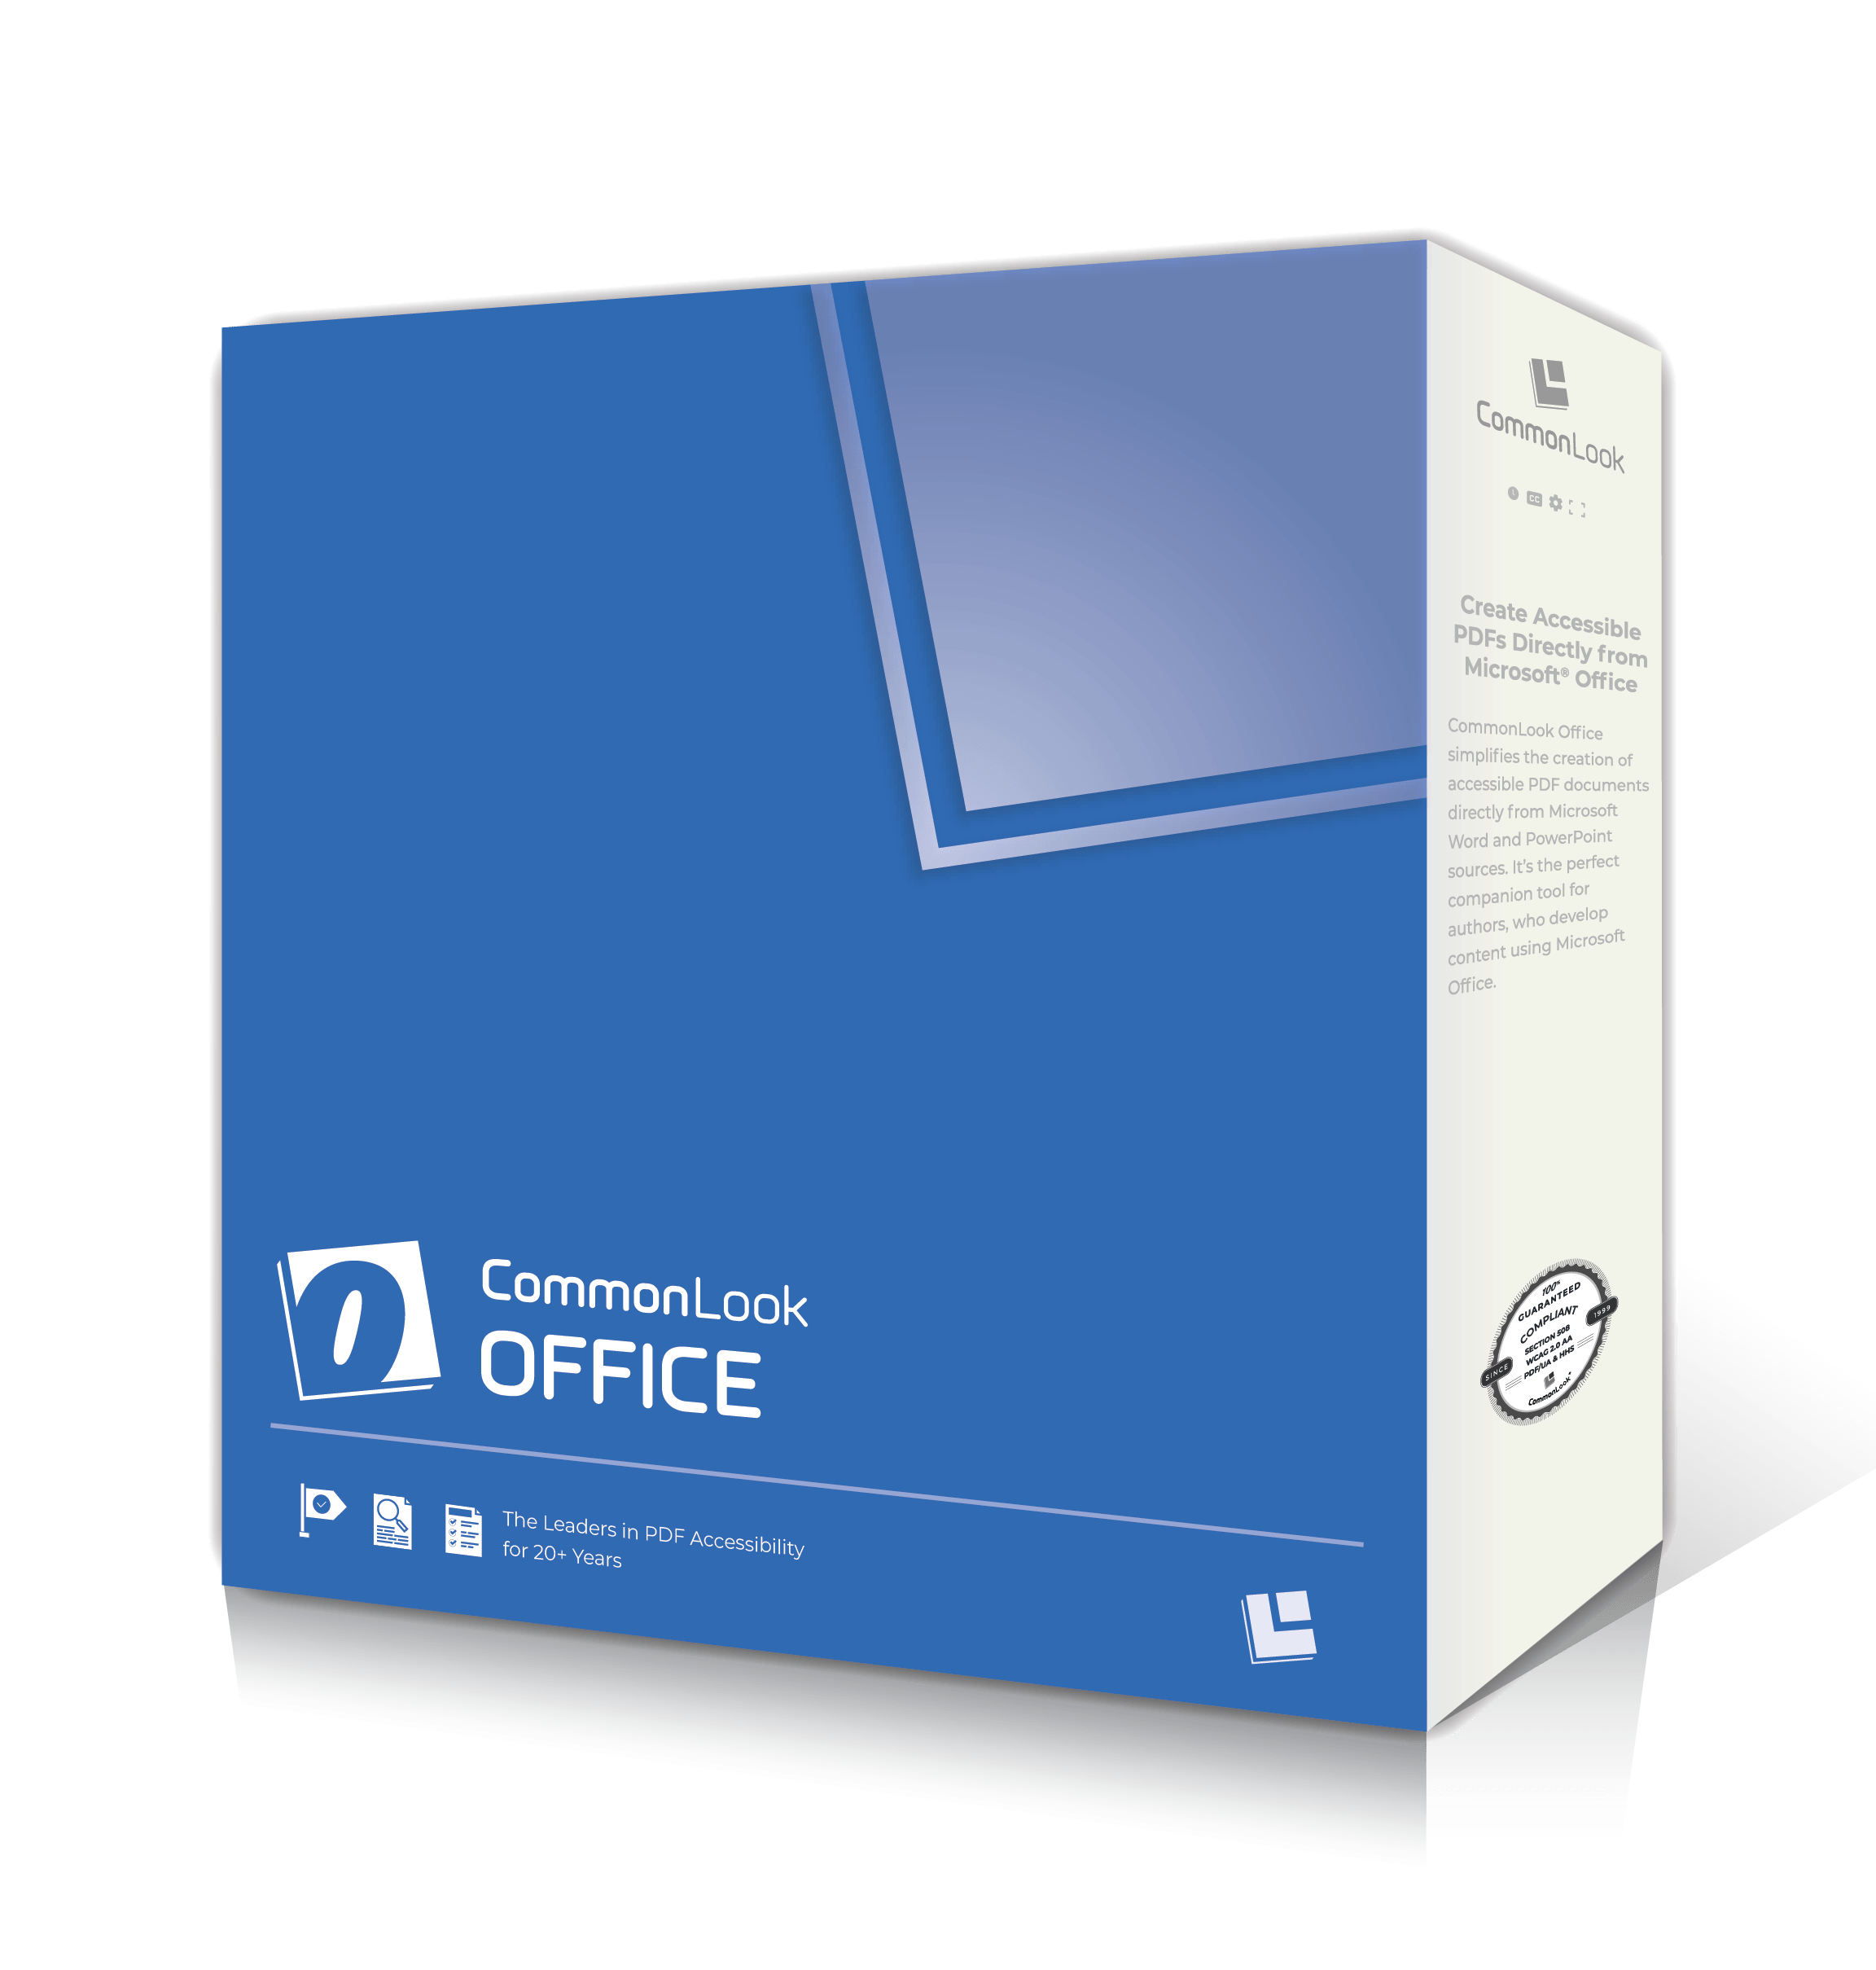 CommonLook Office Product Box